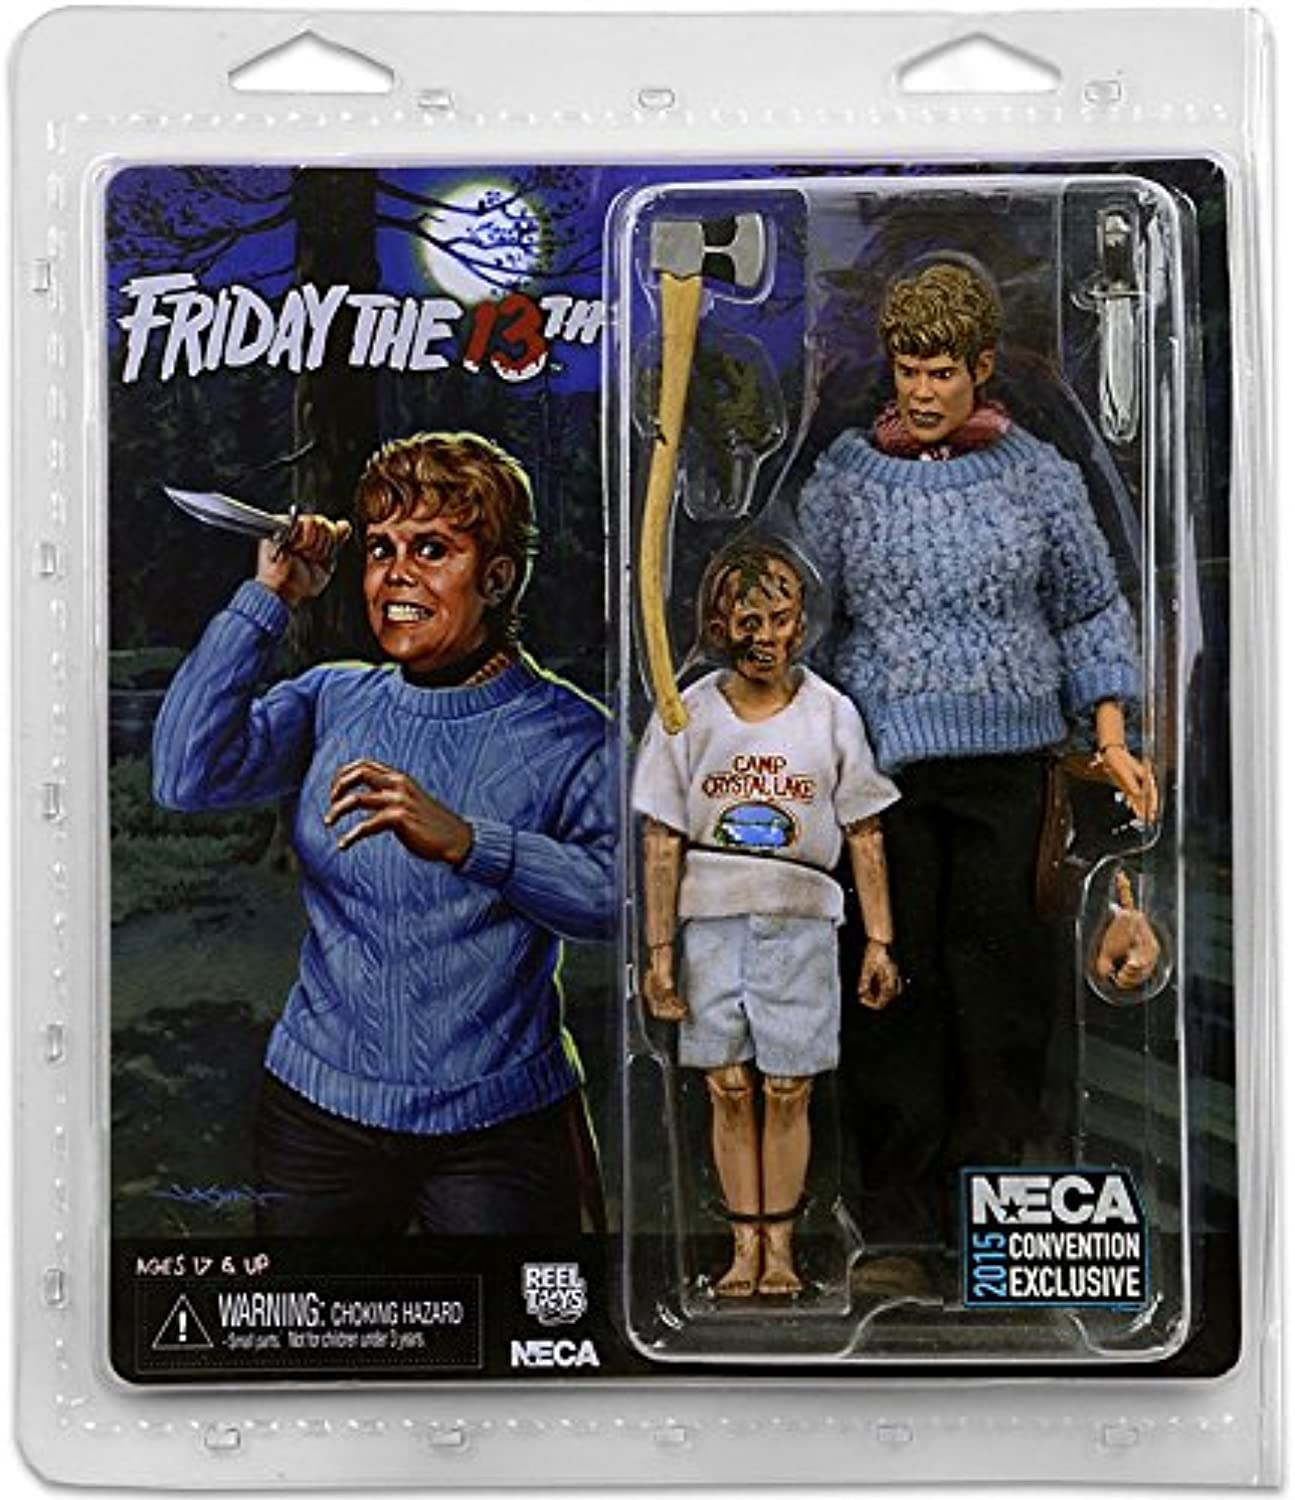 NECA Friday the 13th Pamela Voorhees & Young Jason Exclusive 8 Clothed Action Figure